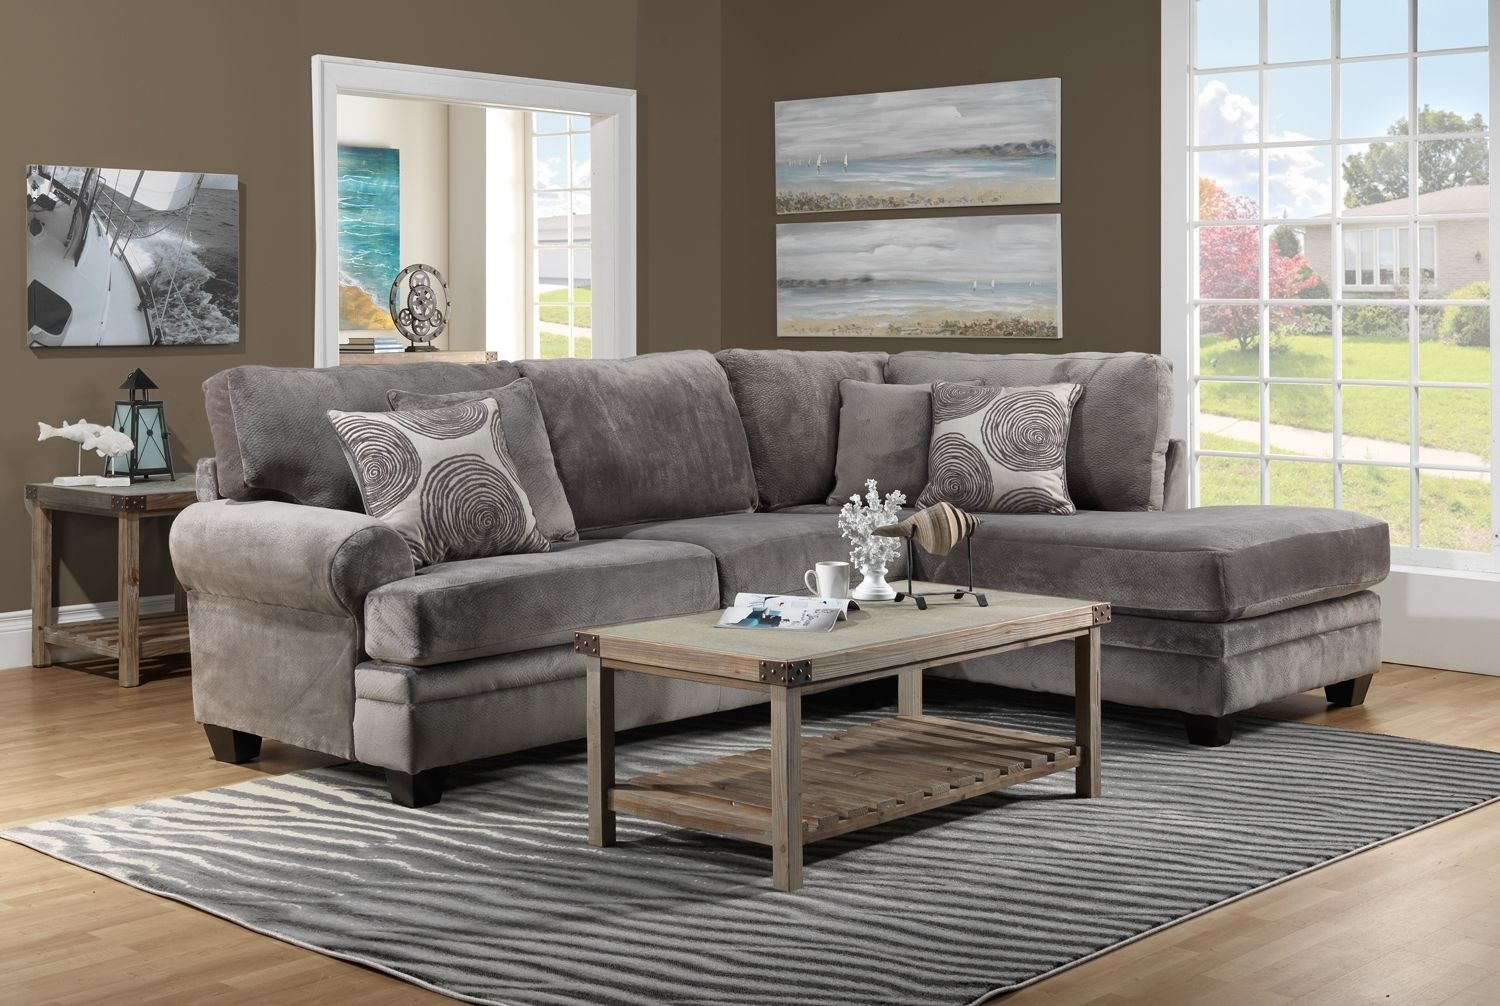 Leons Sofa Sectional  Wwwgradschoolfairscom. Living Room False Ceiling. Benches For Living Room. Blue Gray White Living Room. Cabin Living Rooms. Swivel Rocker Chairs For Living Room. Living Room Color Themes. L Shaped Living Room Design Layout. Living Room Decorations Cheap